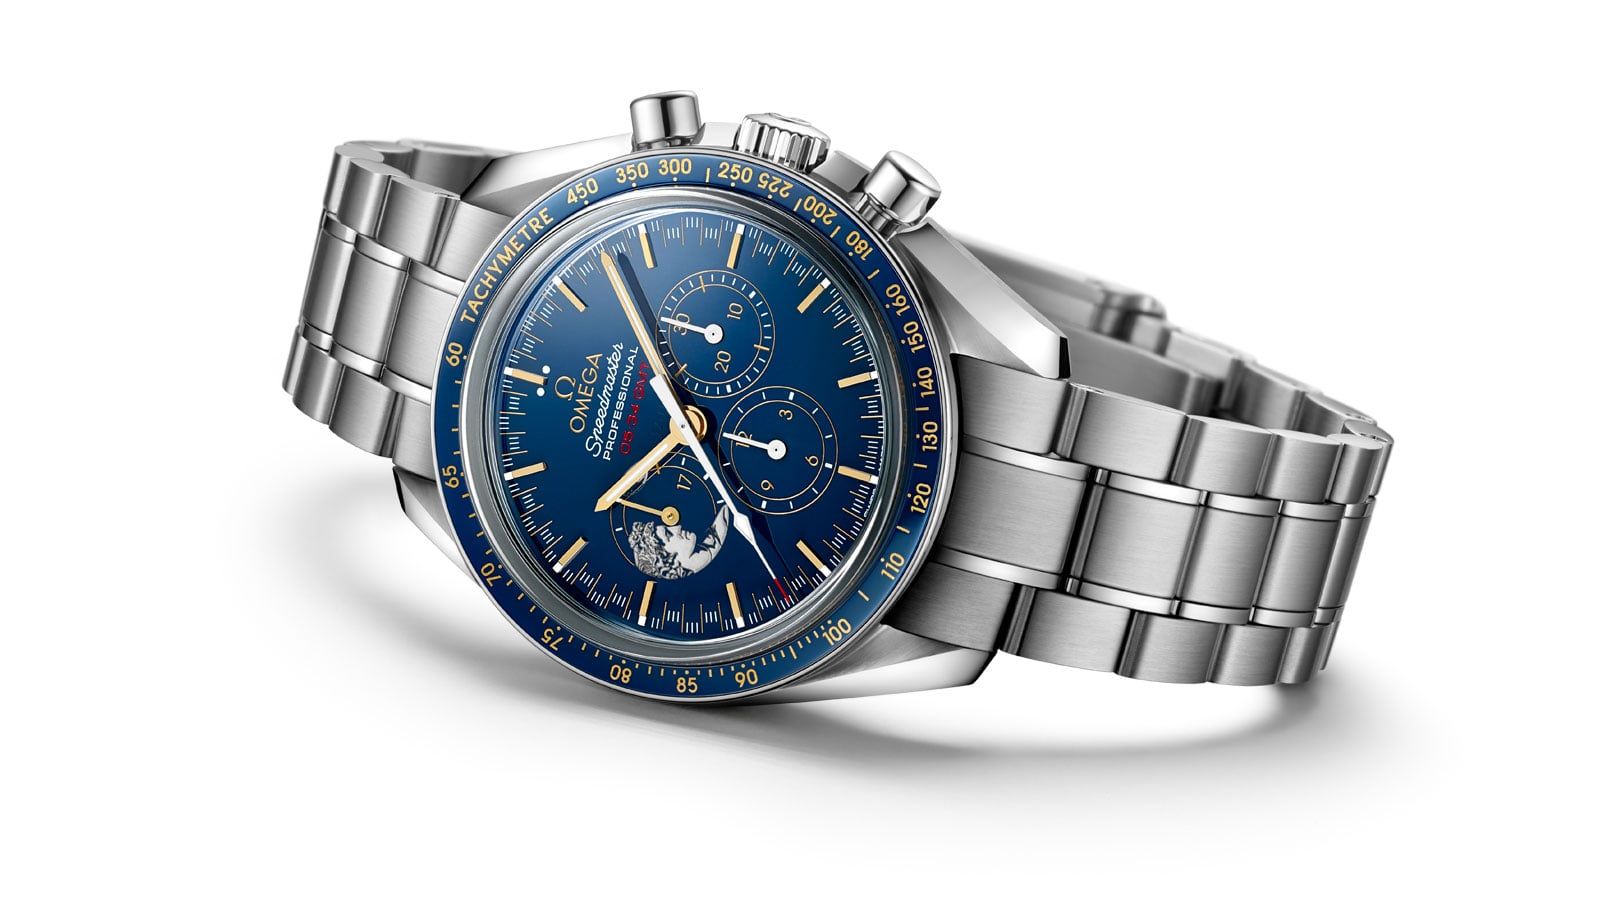 THE SPEEDMASTER APOLLO 17 45TH ANNIVERSARY LIMITED EDITIONS